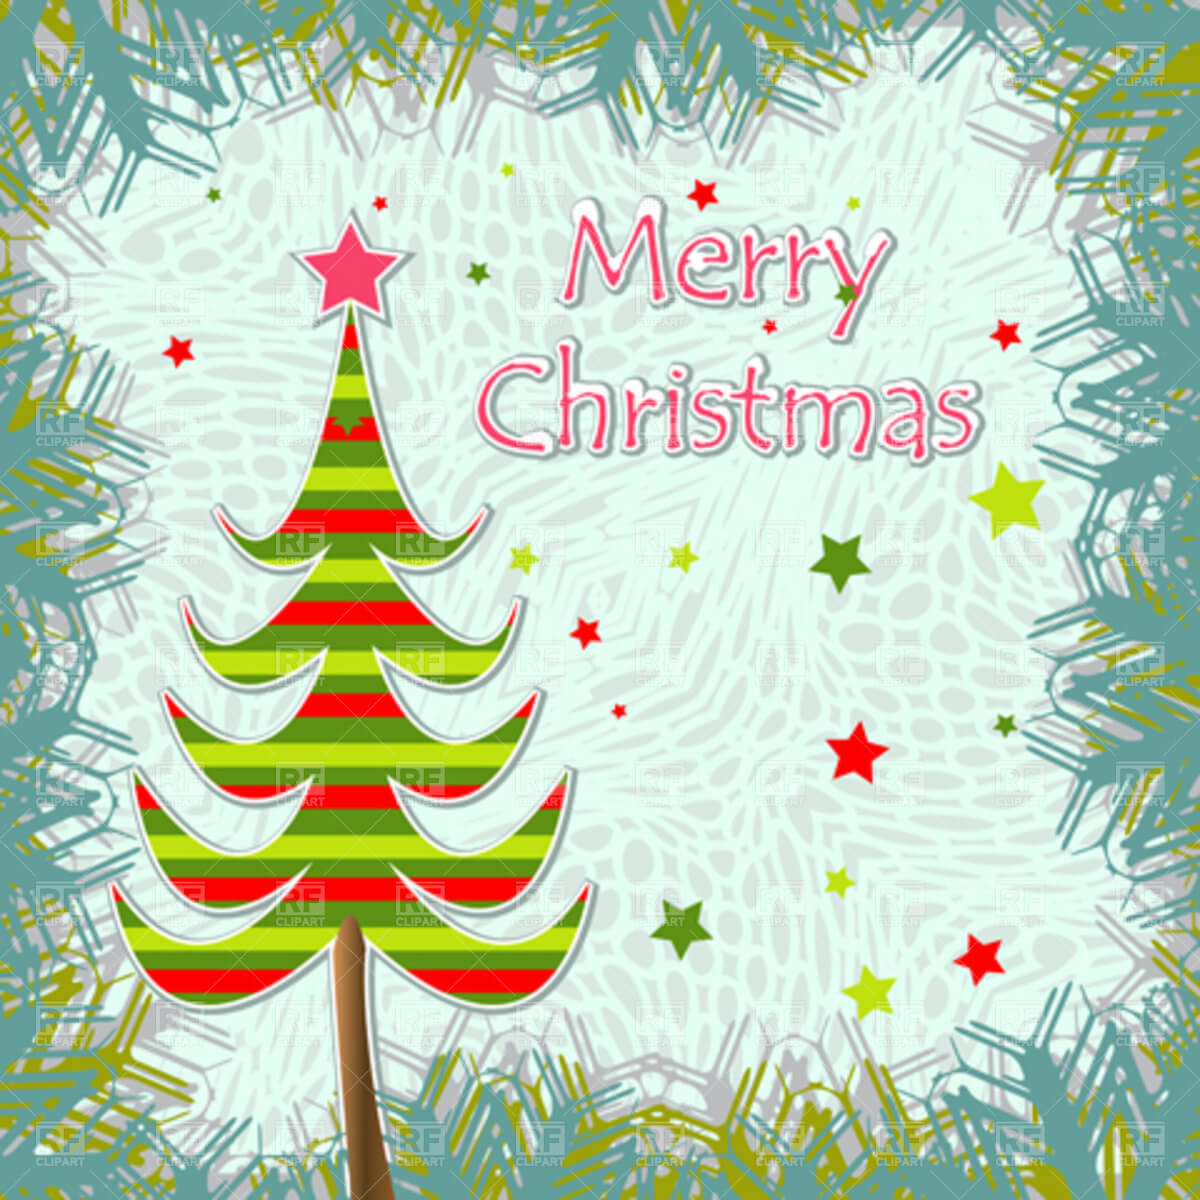 12 Christmas Greeting Cards Template Images - Christmas Card With Regard To Christmas Photo Cards Templates Free Downloads